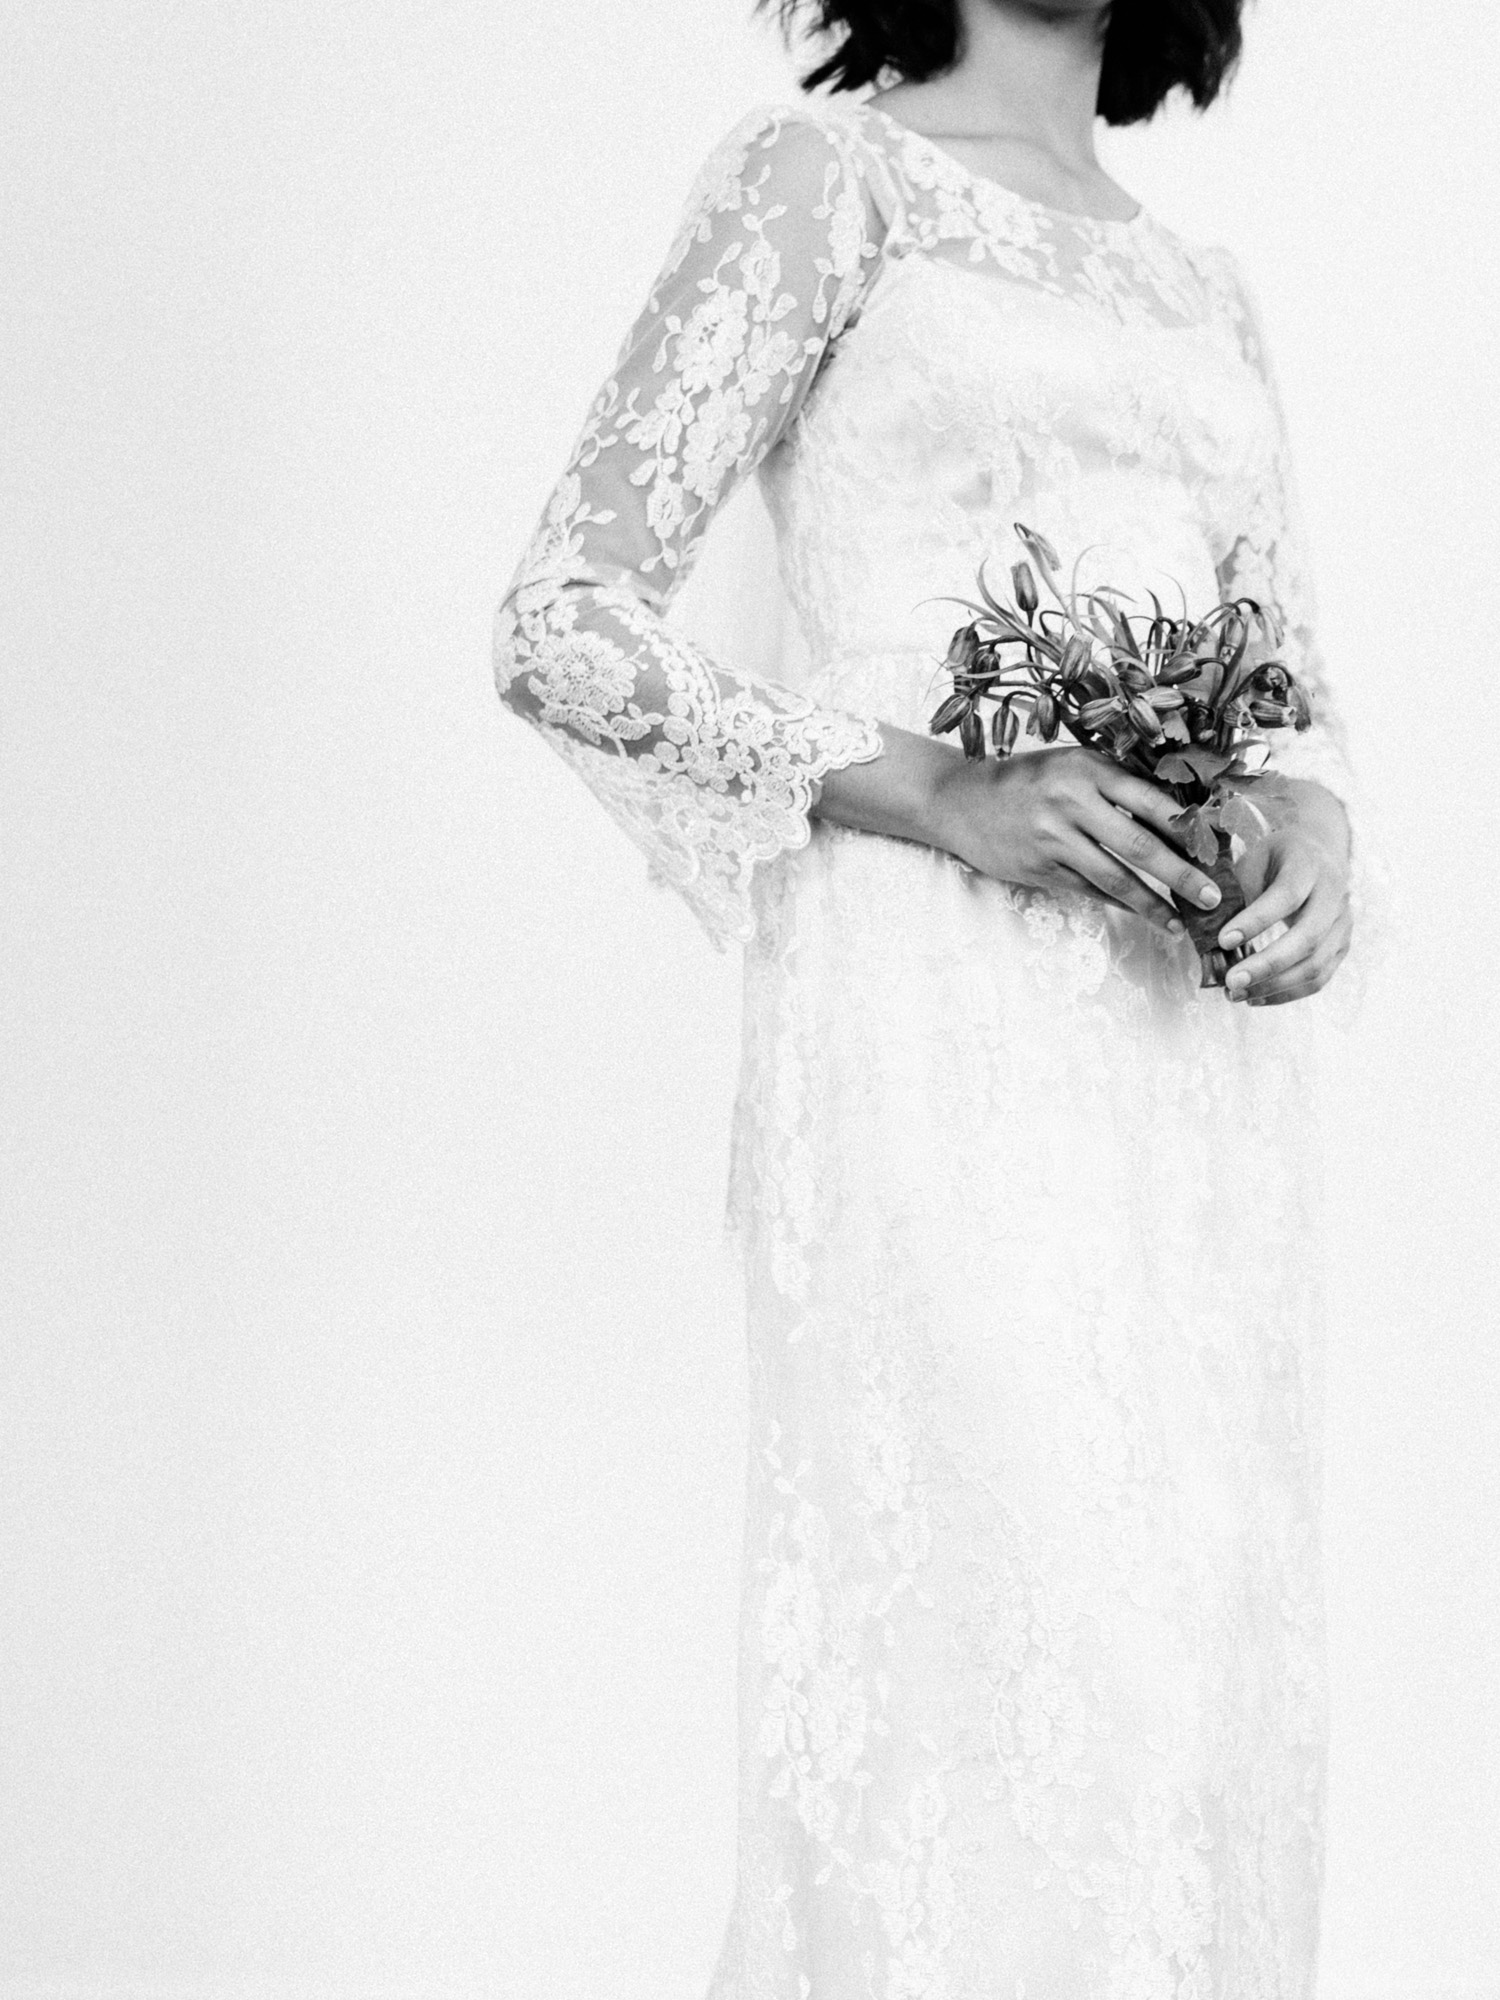 Detail of a wedding gown with full lace sleeves is shown as a dark-skinned bride holds a small bouquet of flowers